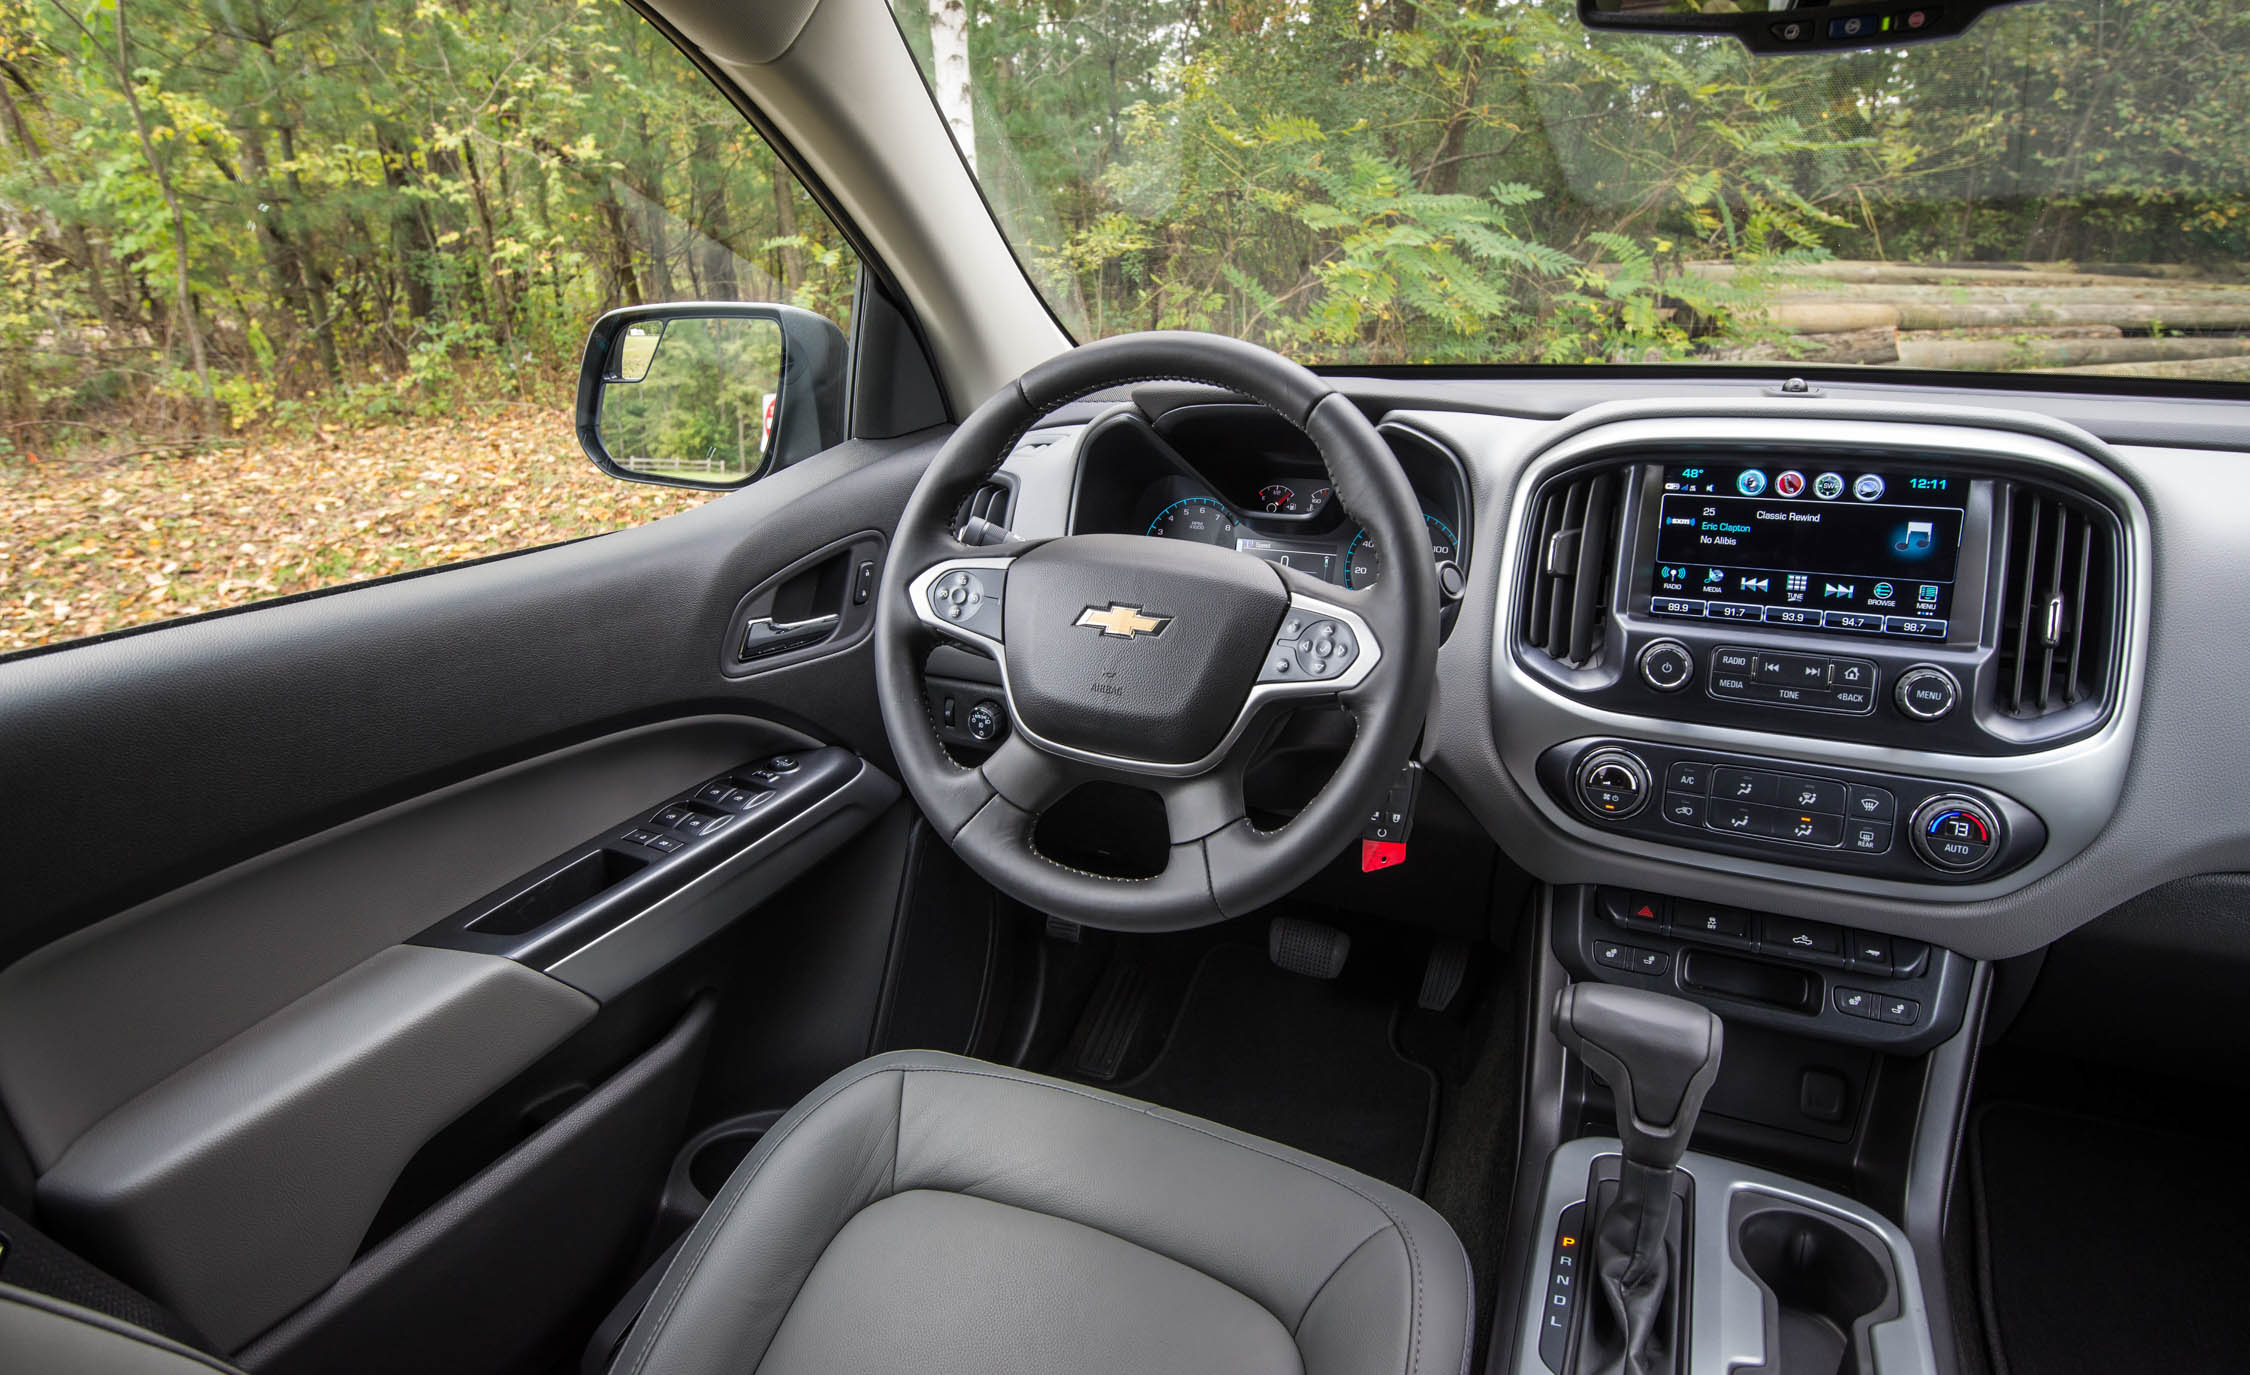 2017 Chevrolet Colorado LT Interior Steering And Headunit (Photo 37 of 41)